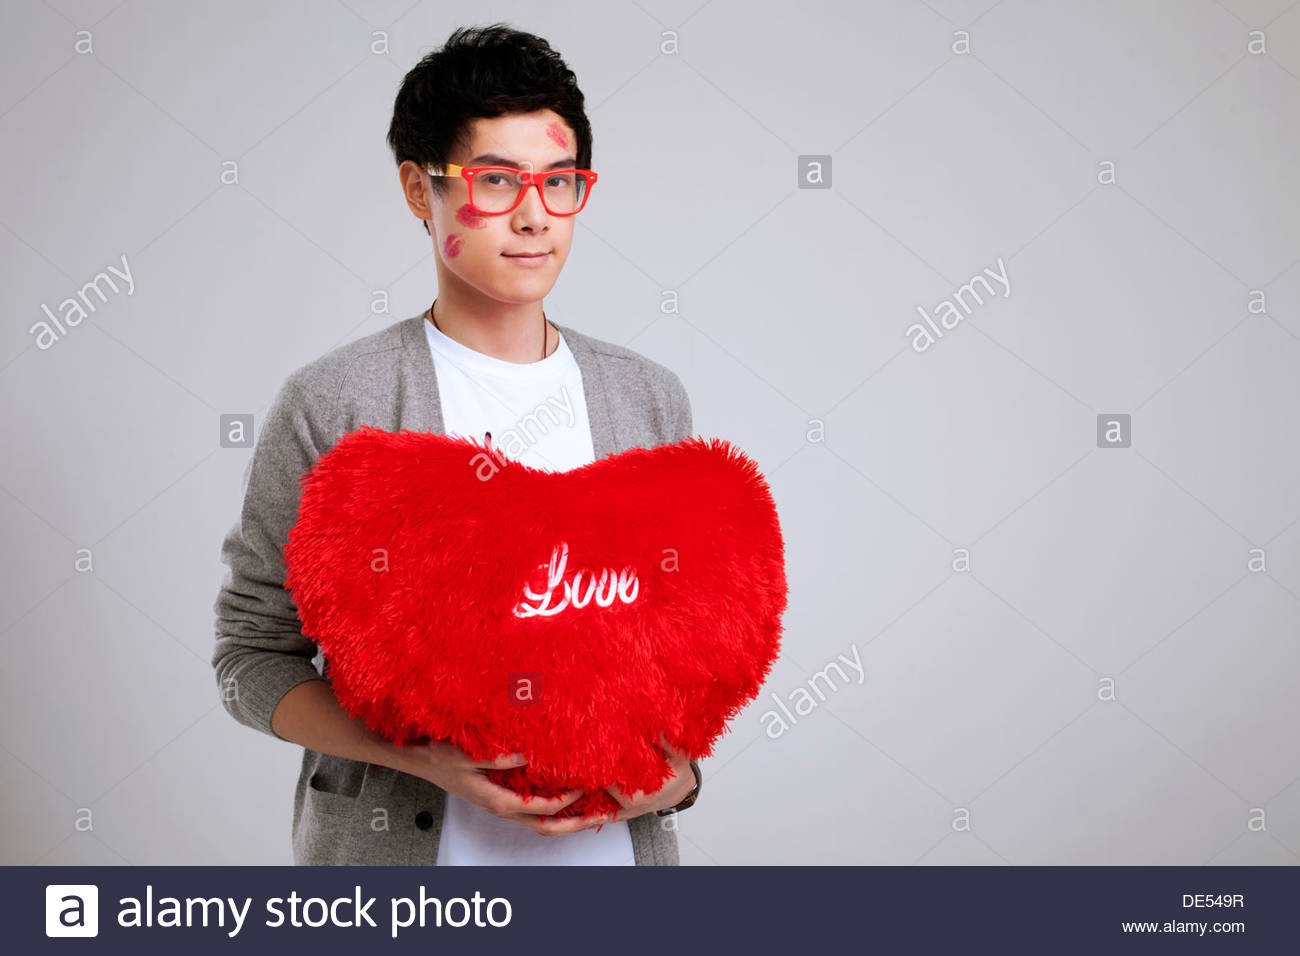 Man Shaped Pillow A Young Man Holding A Heart Shaped Pillow Stock Photo Royalty